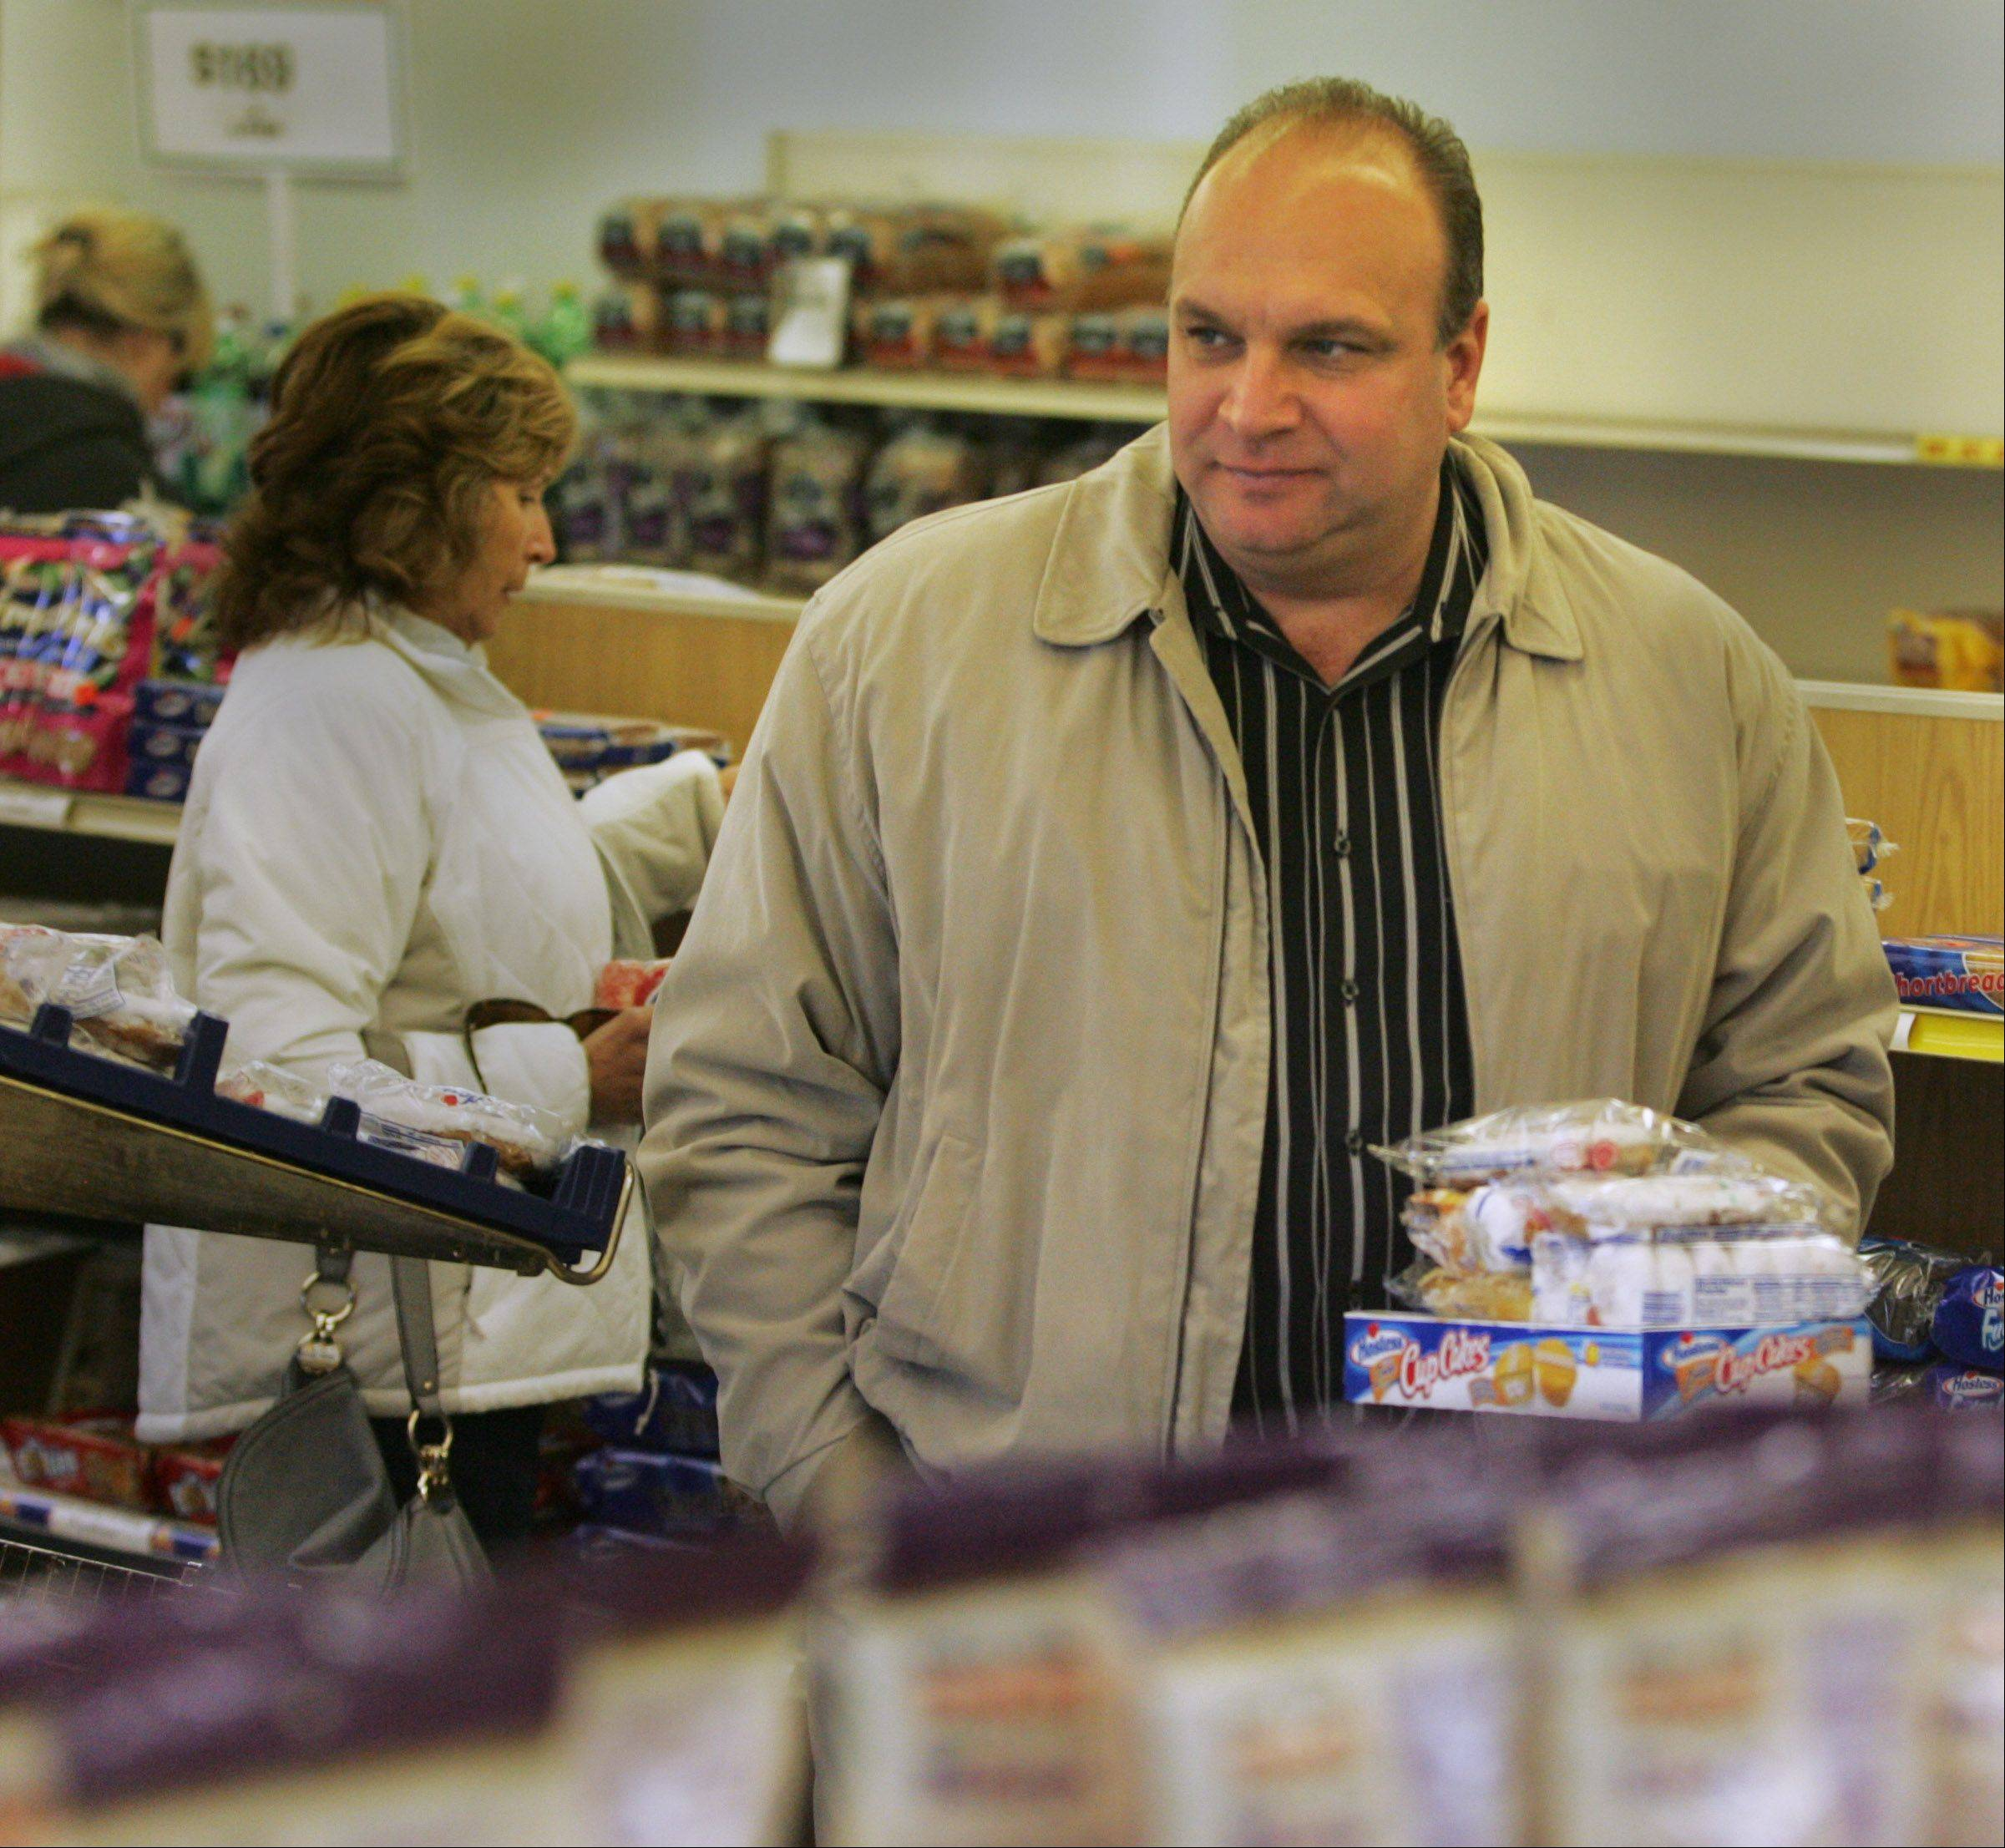 Gilberts resident Dave Scurto stopped into the Wonder Hostess Thrift Shop Friday afternoon to pick up some treats after he heard the store would be closing.